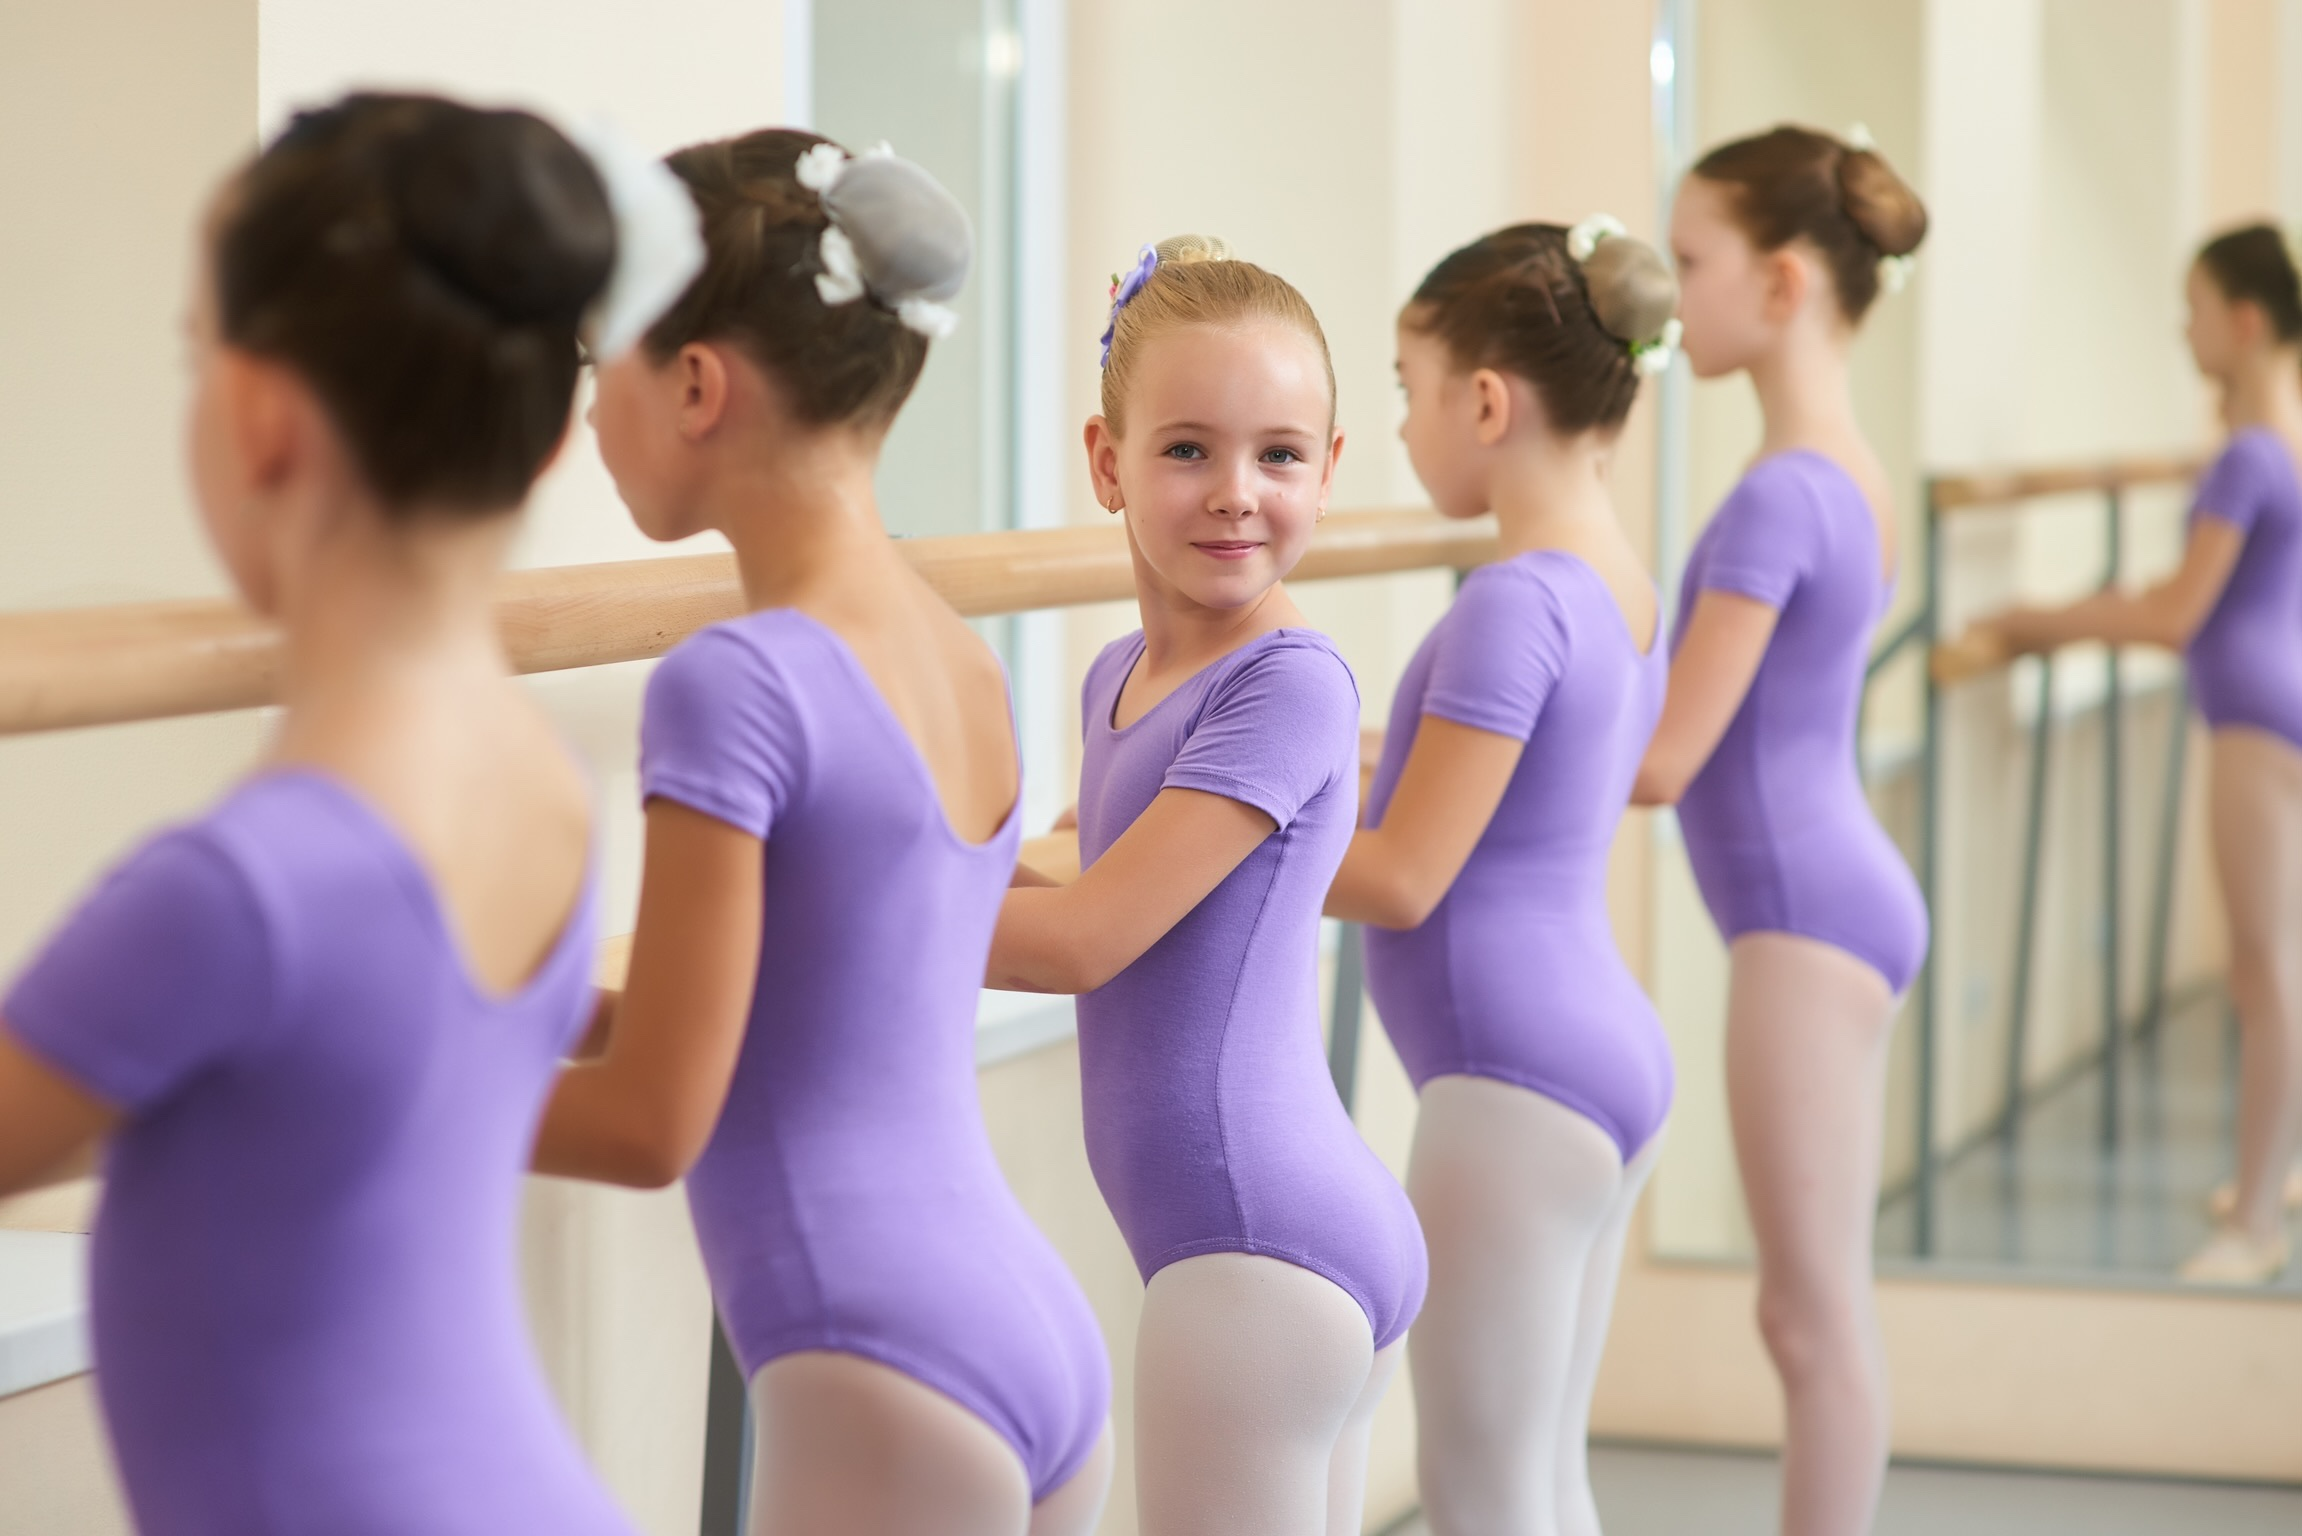 cute grils on dance classes with training leotards